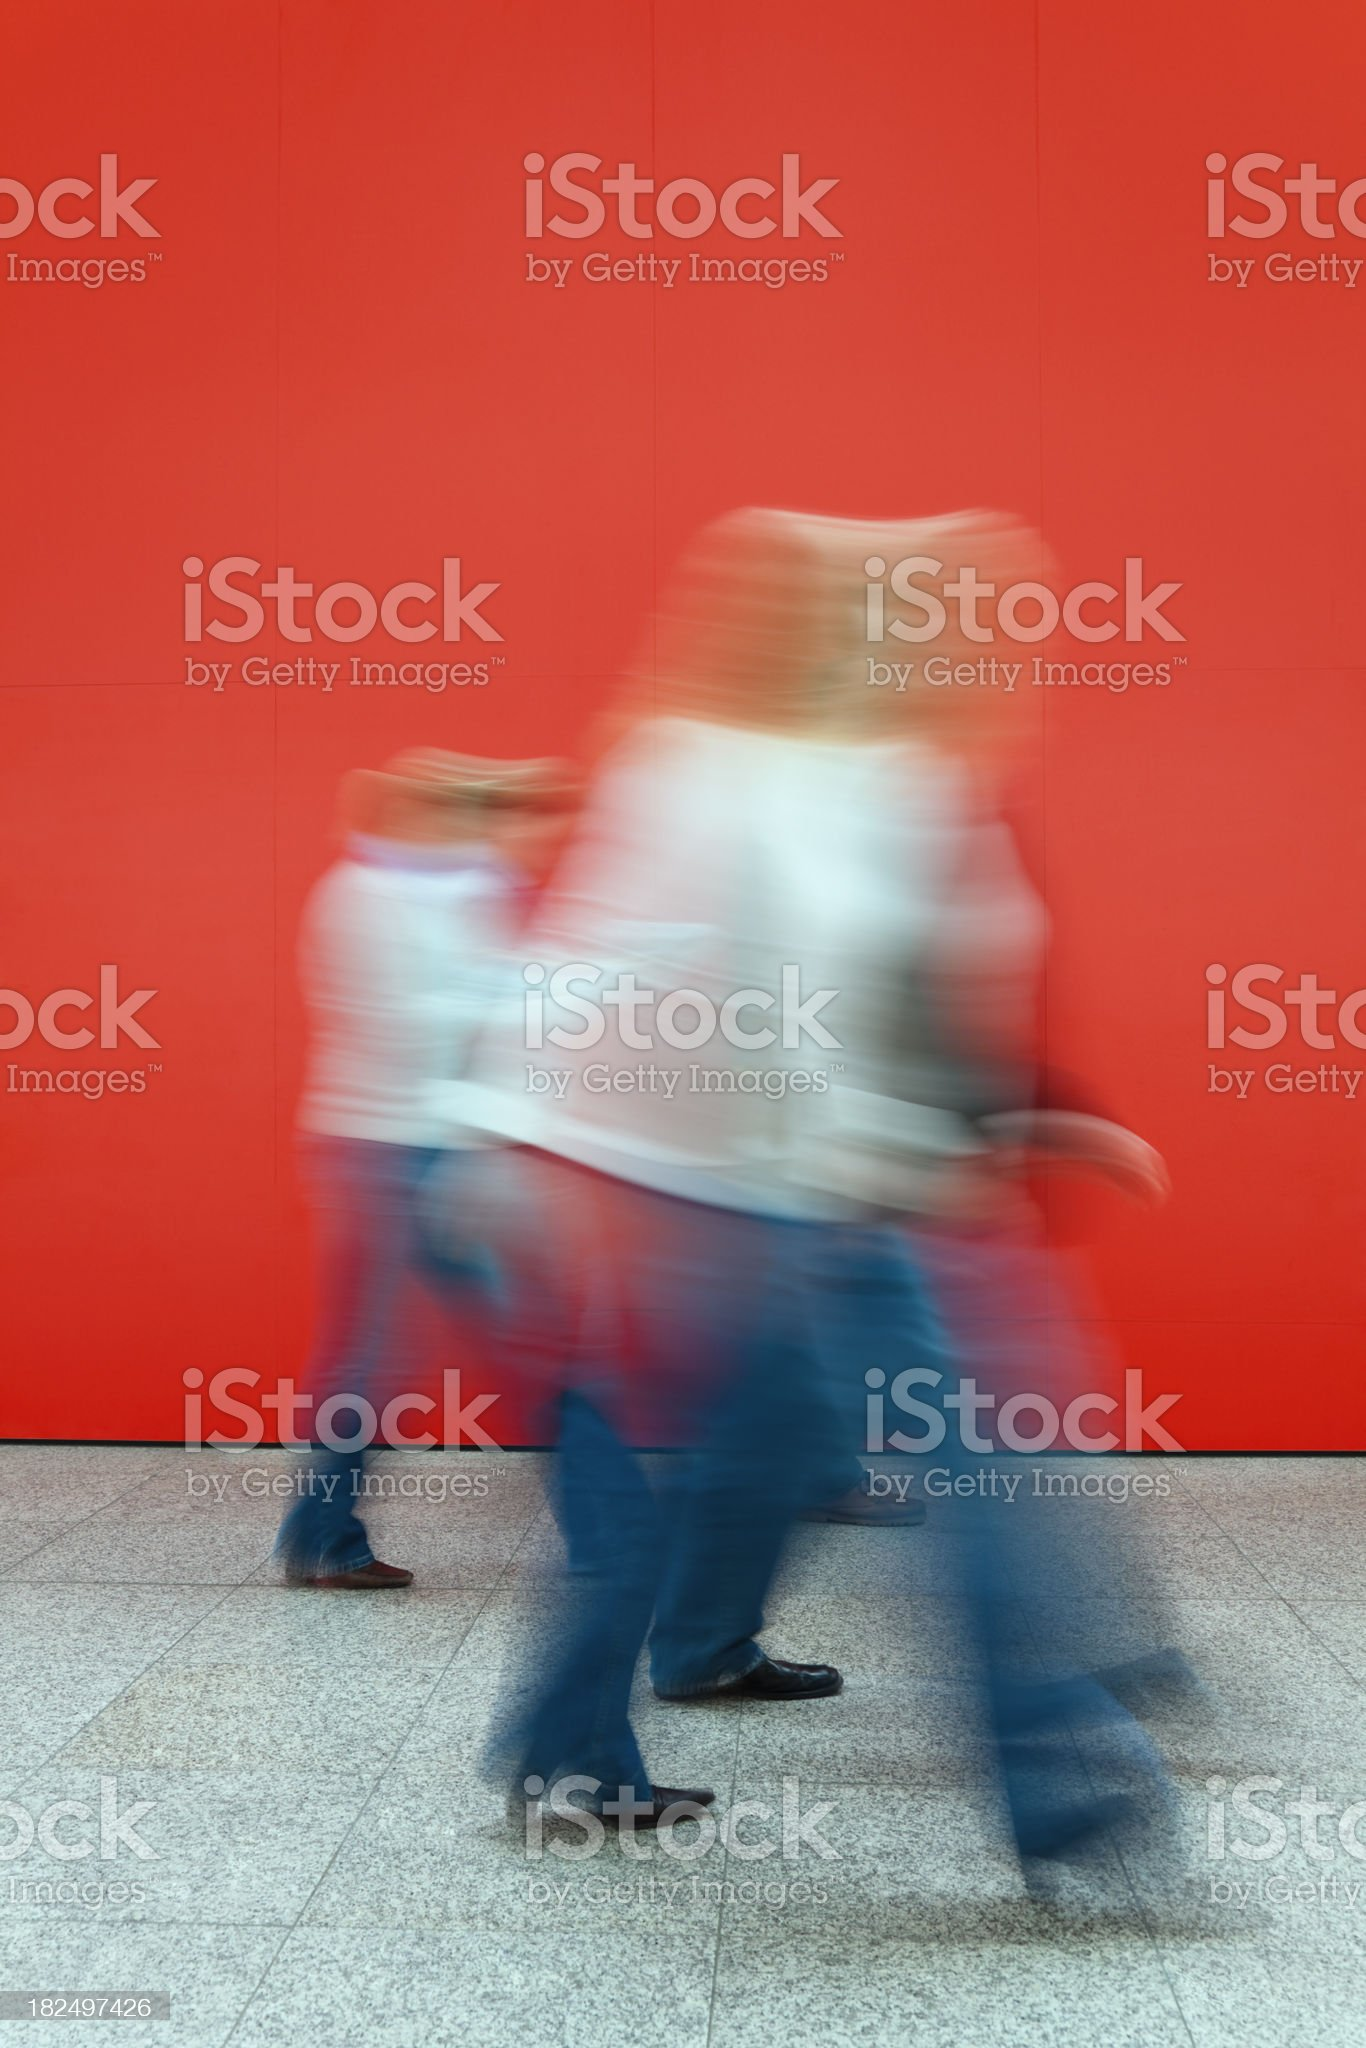 Motion Blurred Women Walking Against a Red Wall royalty-free stock photo